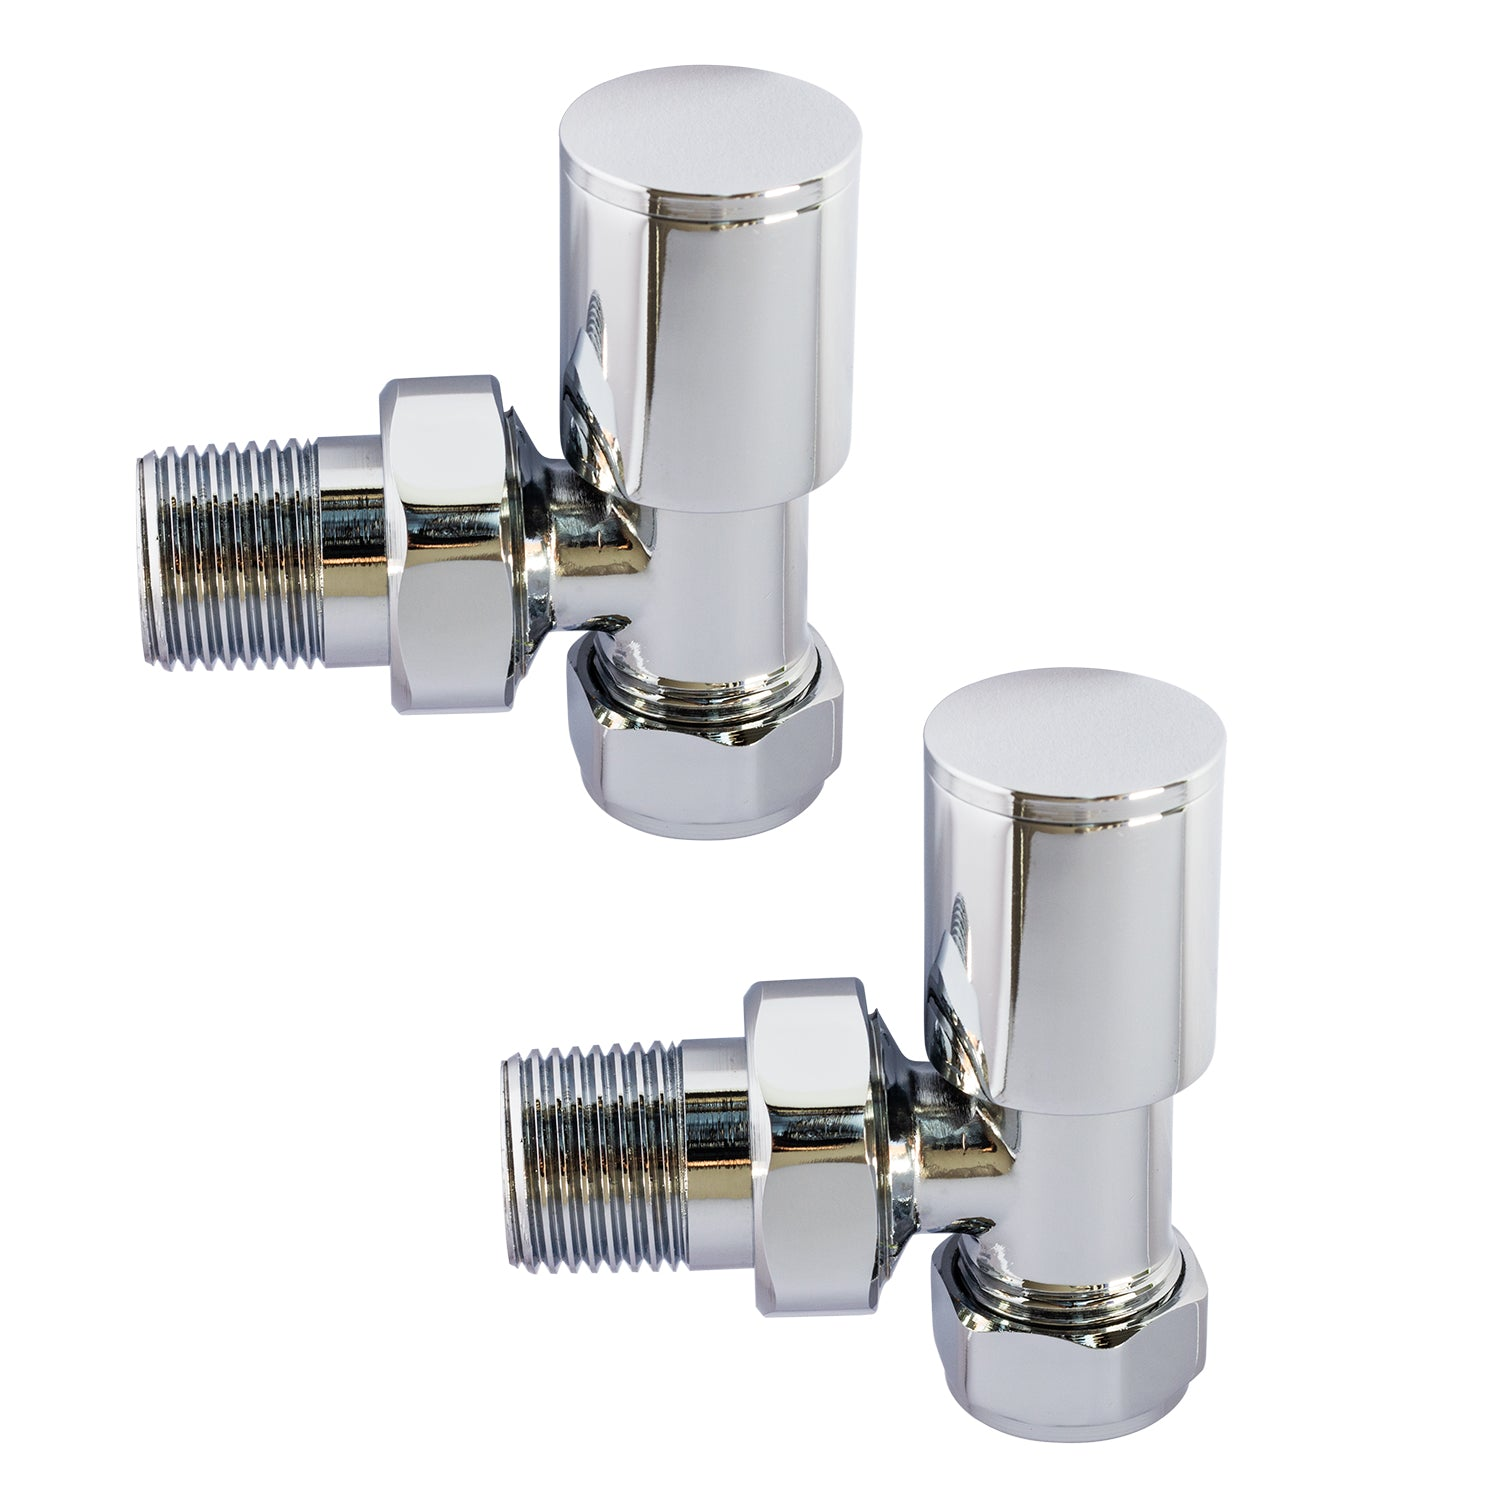 Chrome Plated Angled Valve for Heated Towel Rail Radiator Pair - Elegant Radiators